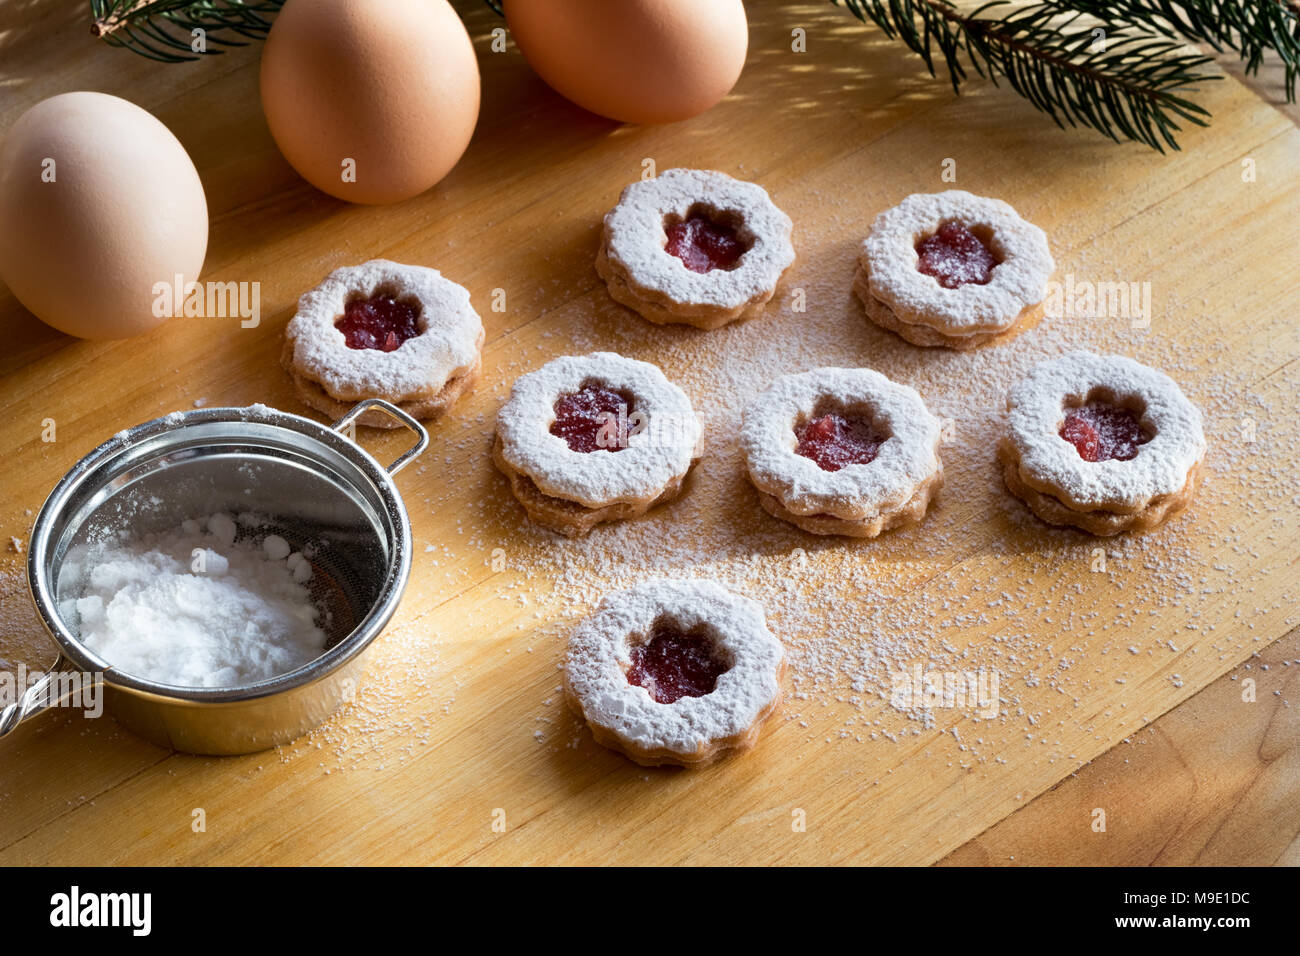 Trraditional Linzer Christmas cookies dusted with sugar, with a sifter and eggs in the background - Stock Image